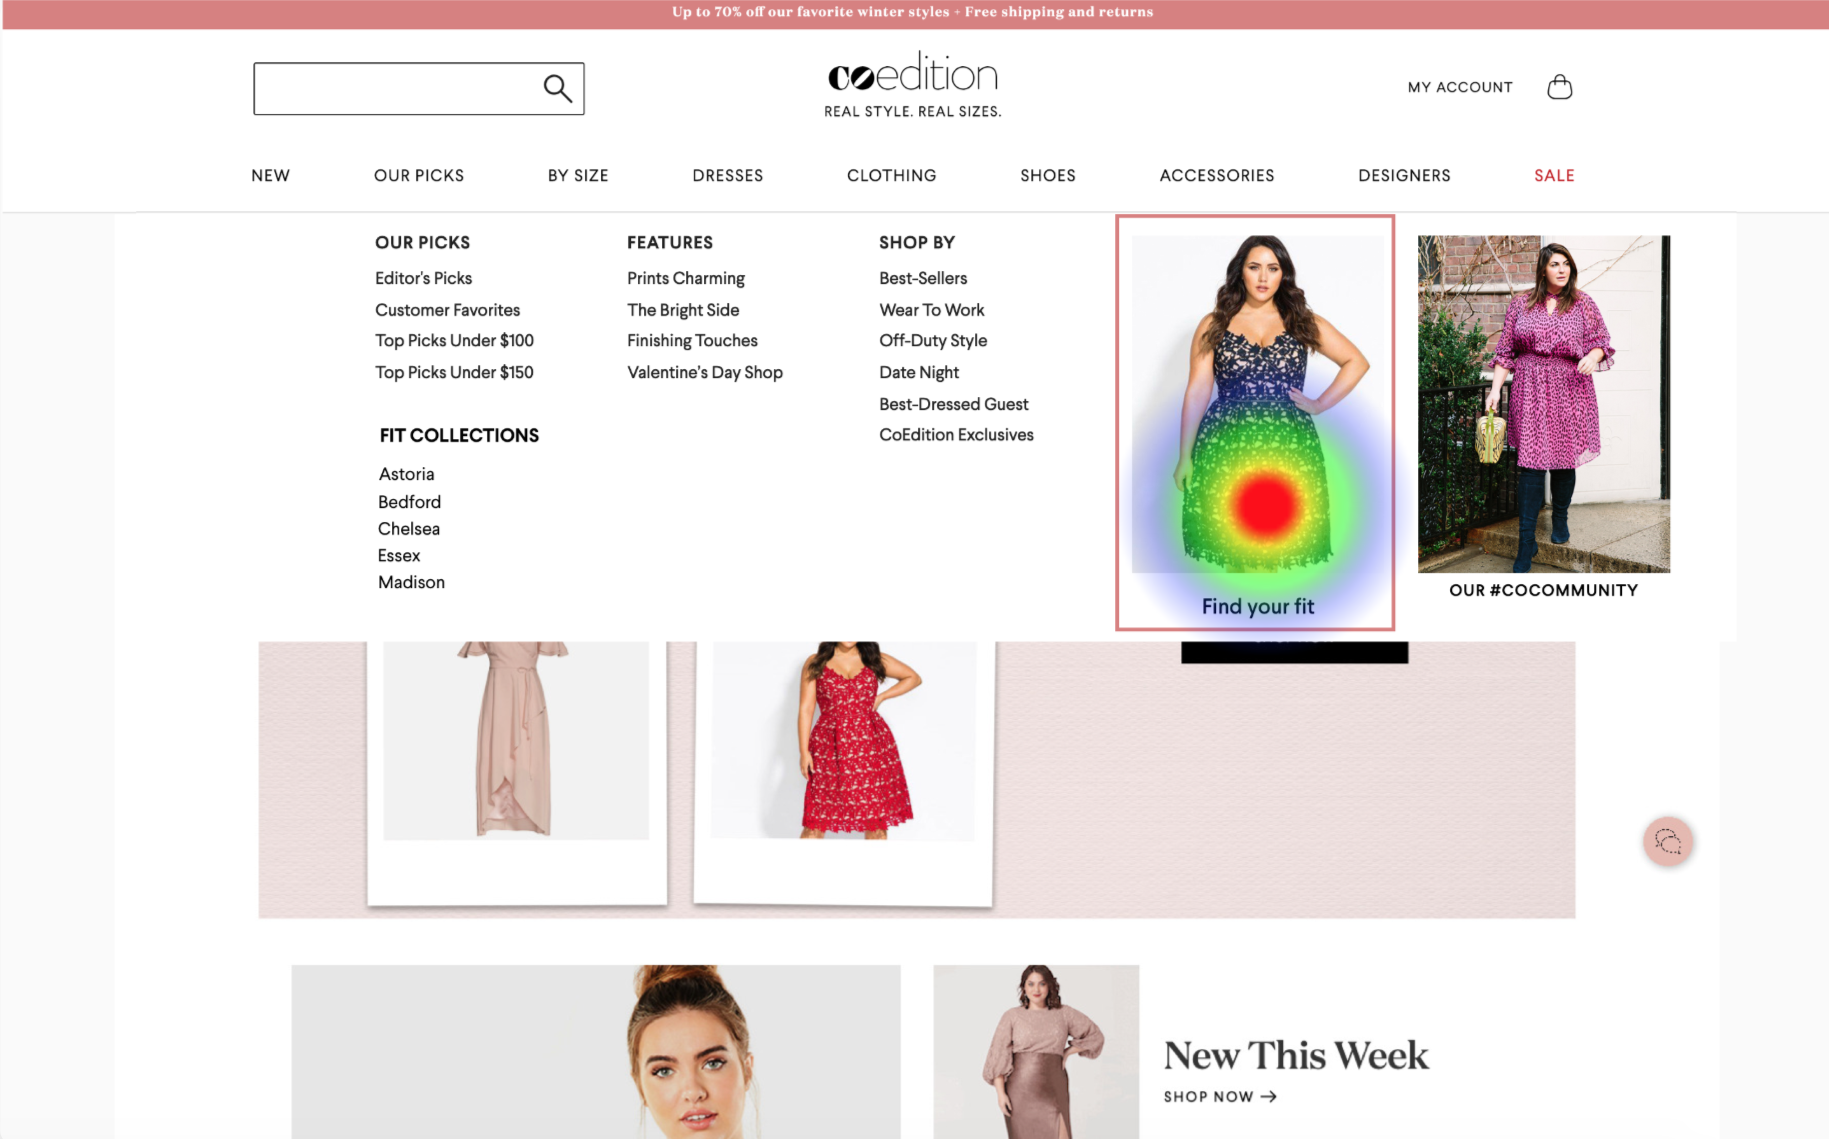 Task 2 - Locate  Find Your Fit to view collections   in the navigation menu